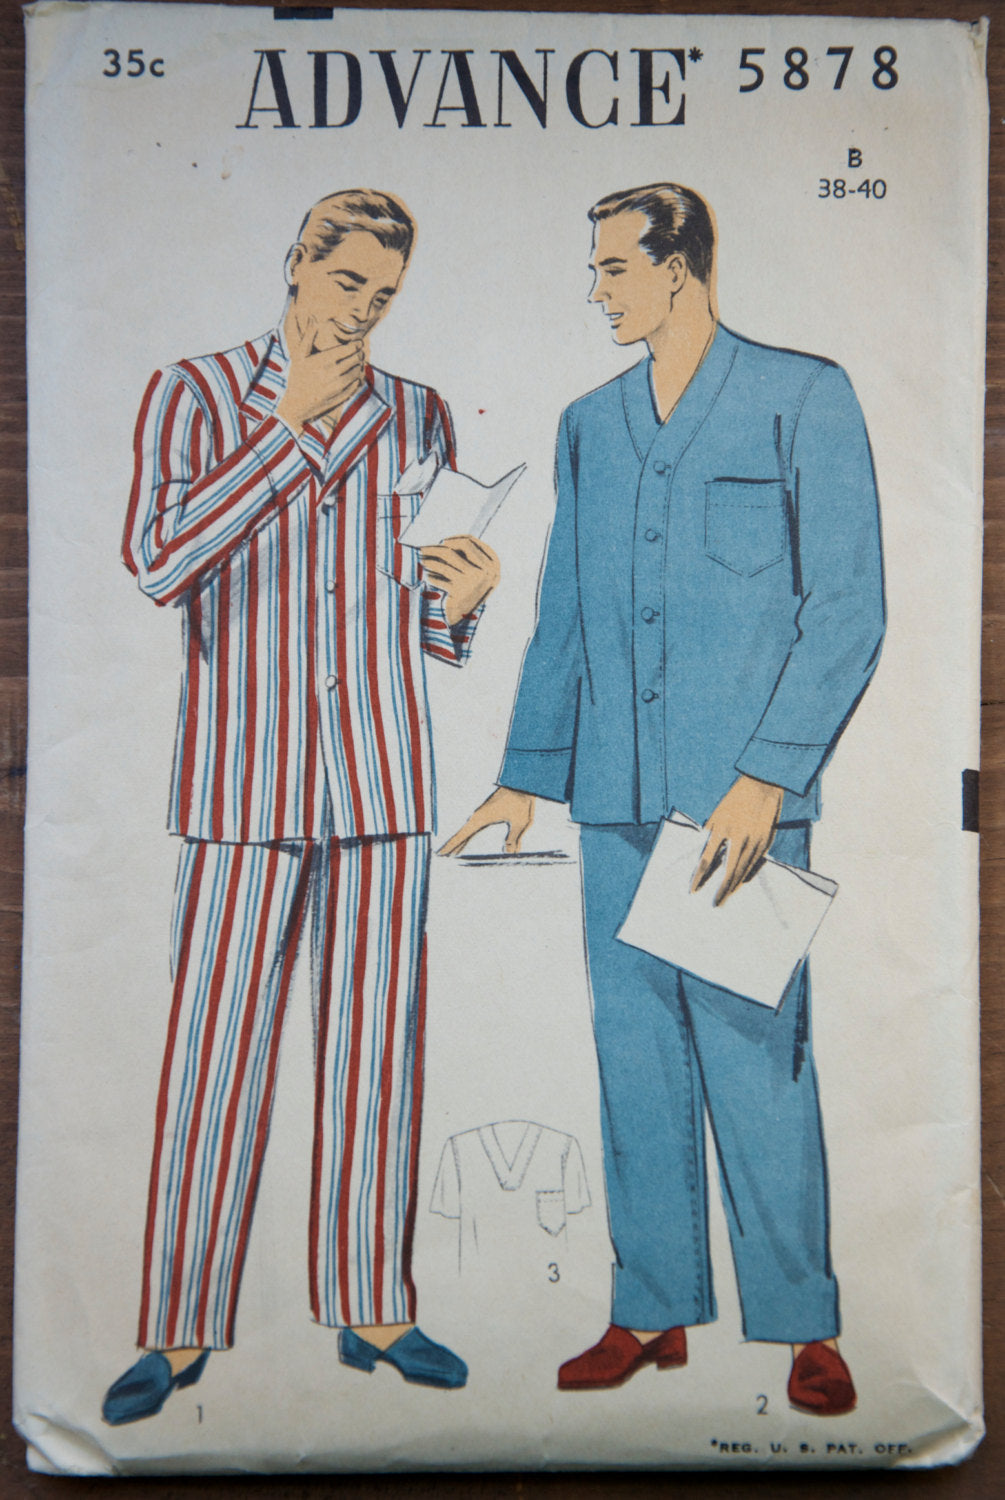 1950's Advance Men's Pajama pattern - Chest 38-40